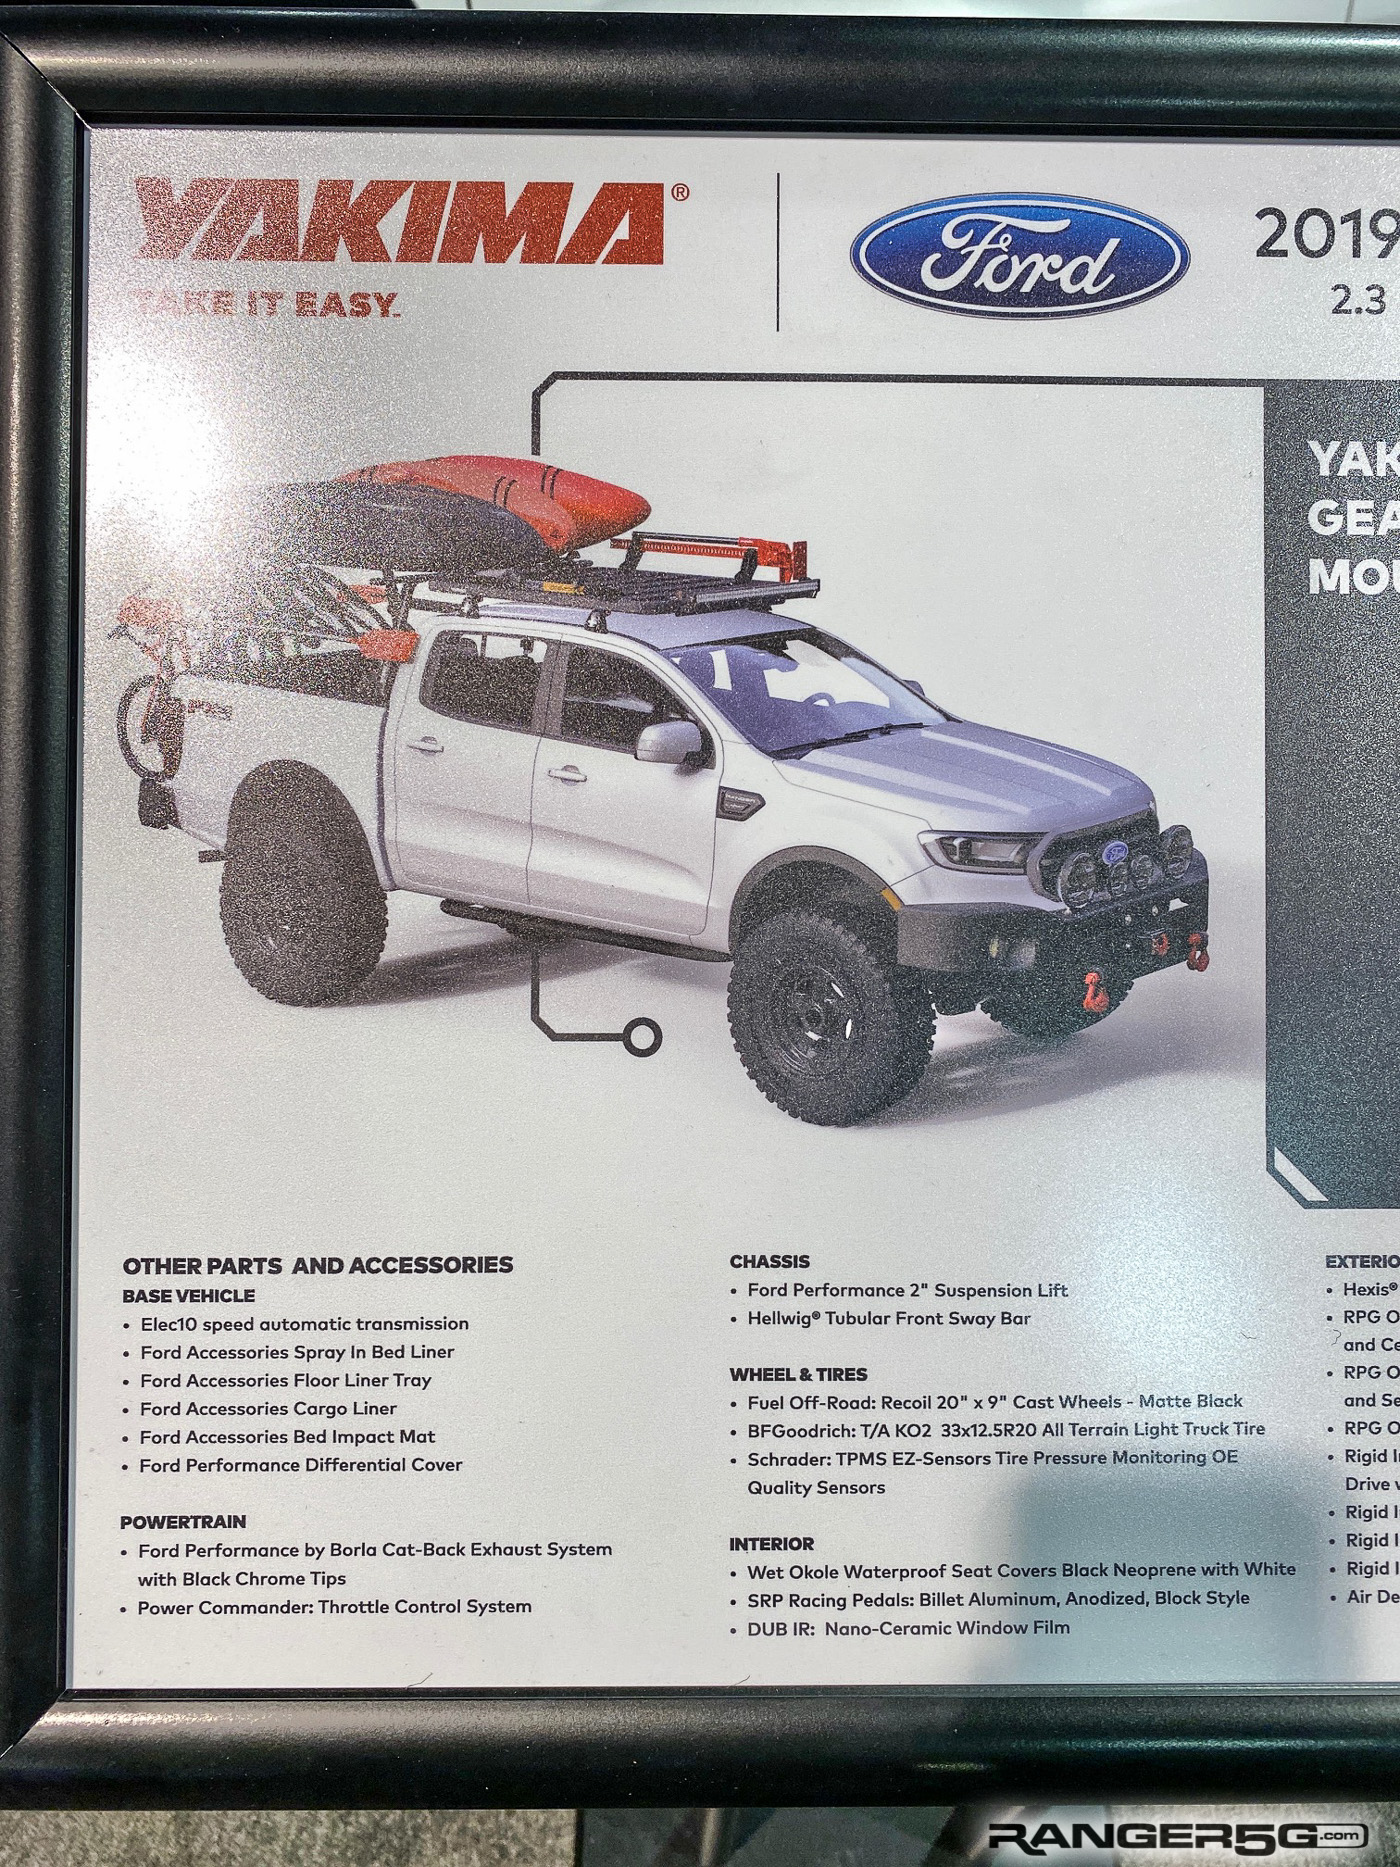 Yakima-Ford-Ranger-SEMA-Build-1.jpg